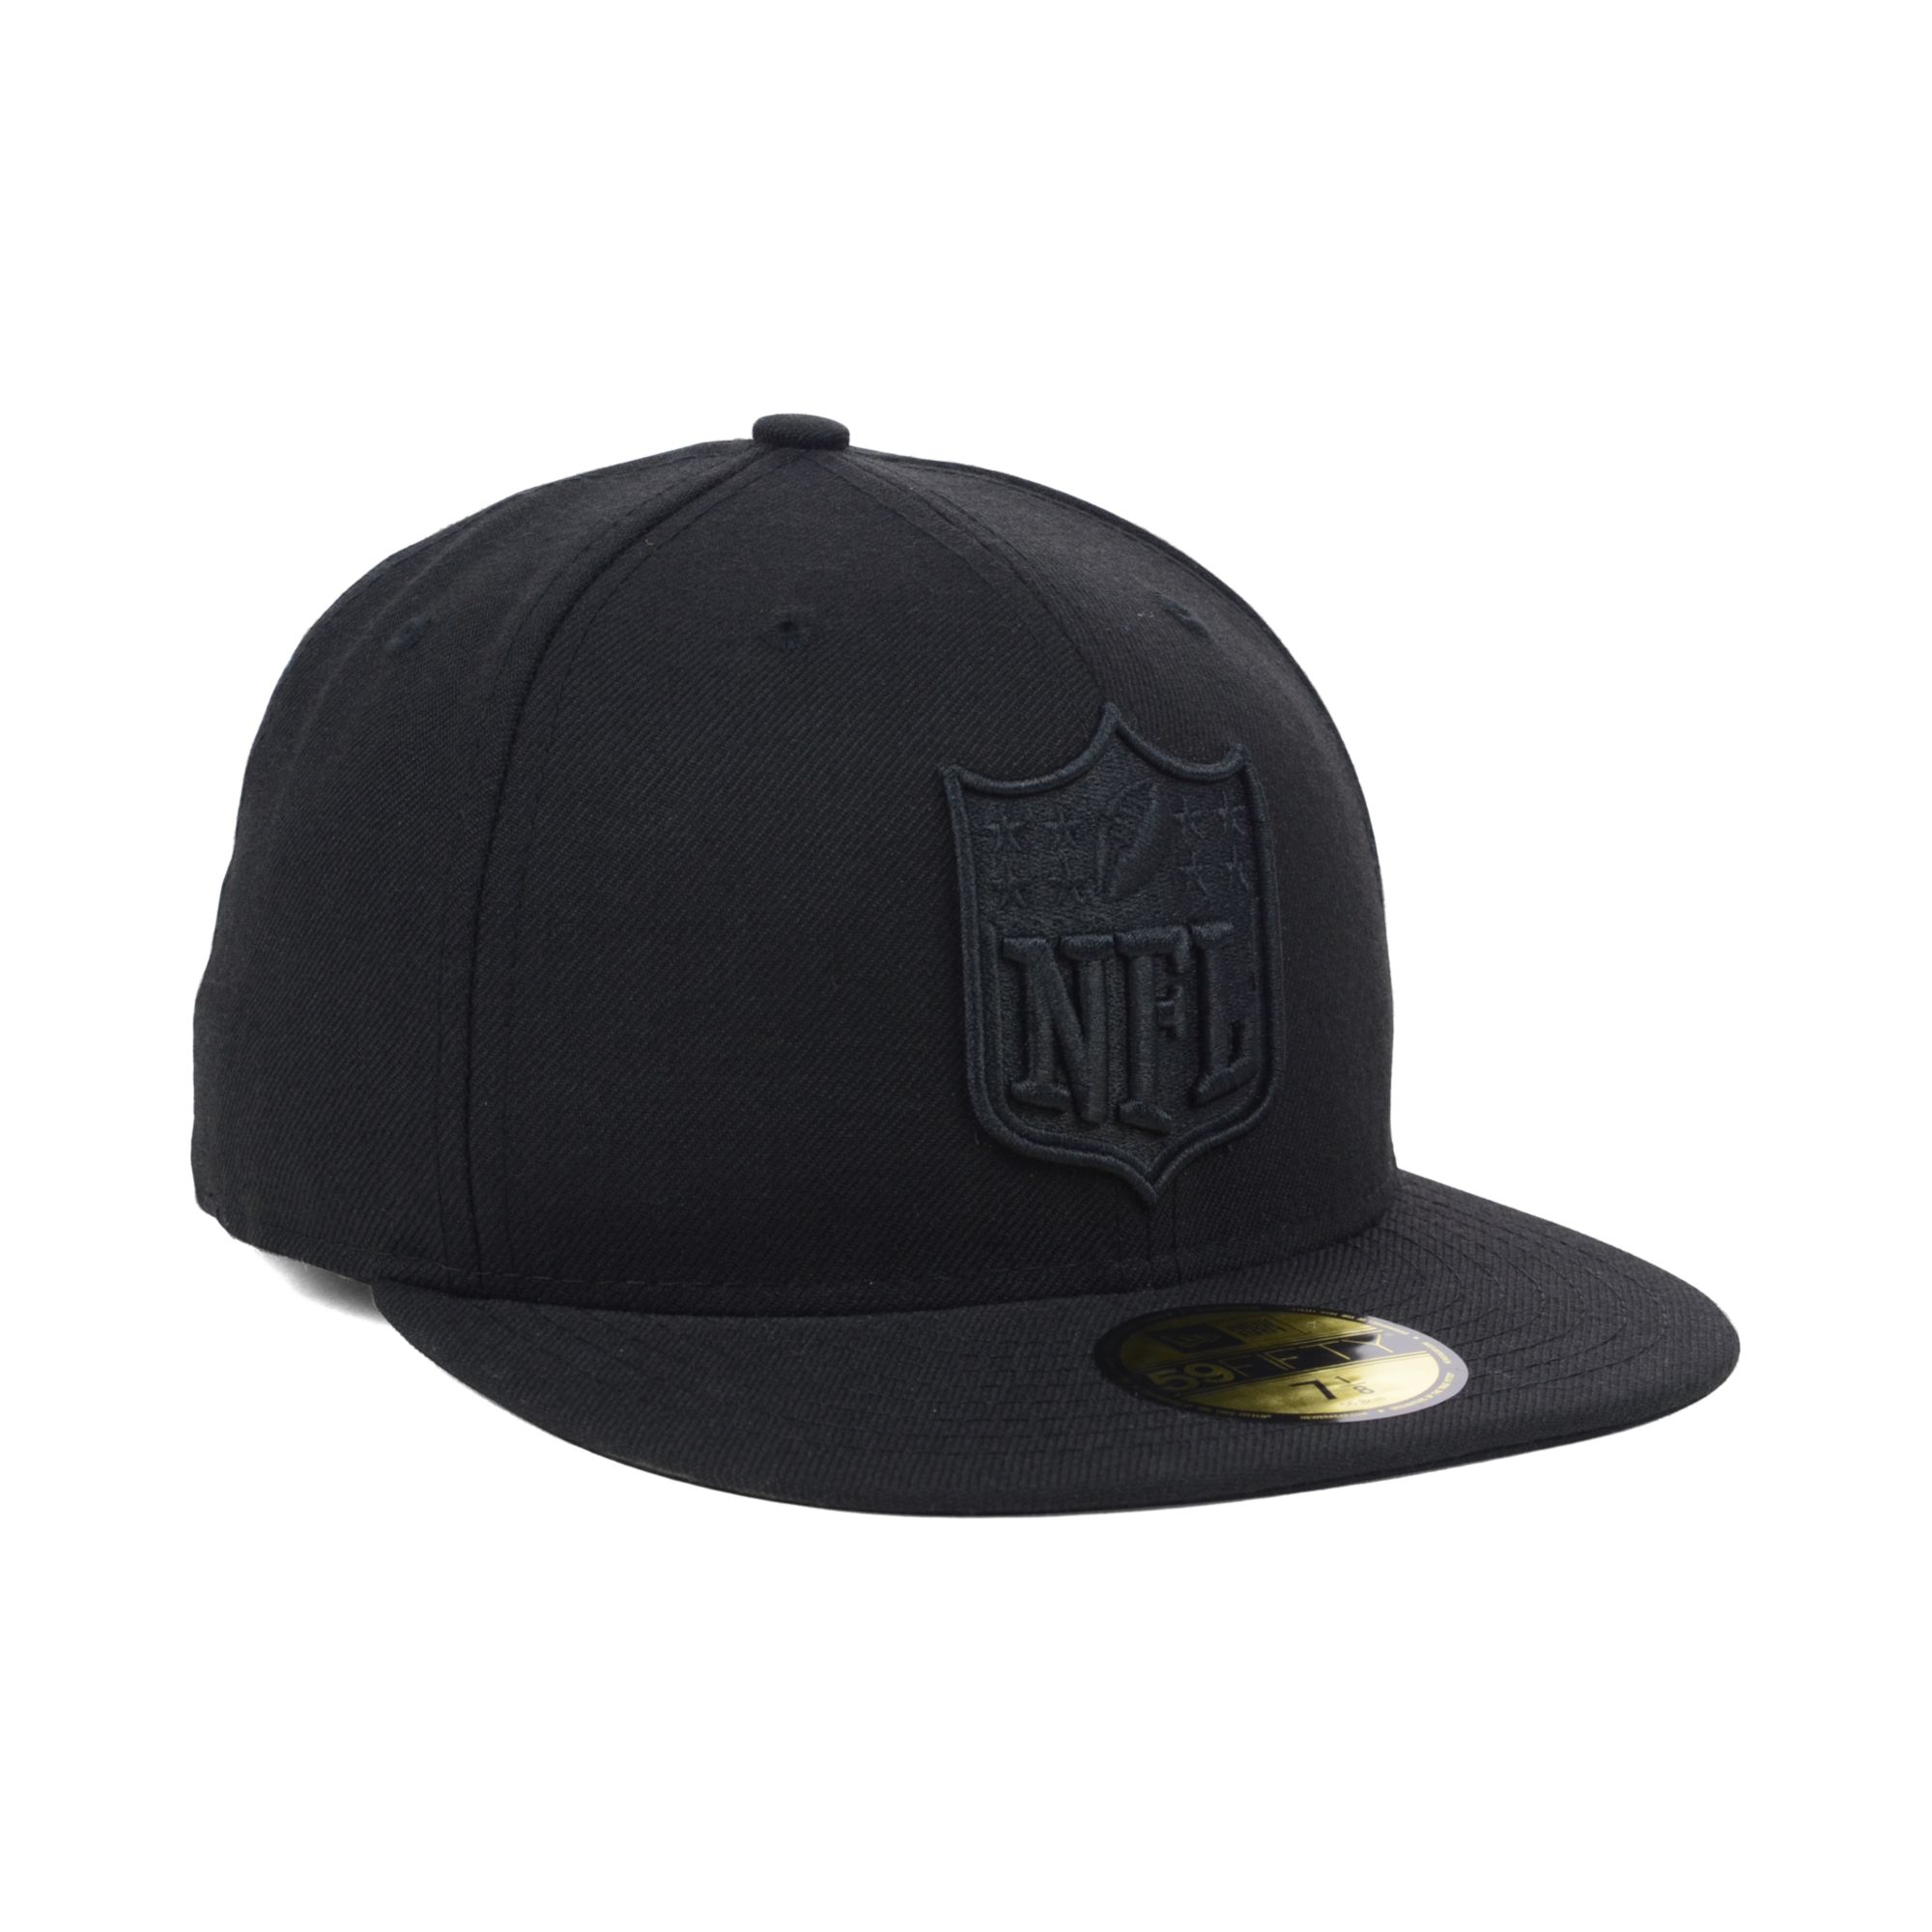 New Era Nfl Shield 59fifty Fitted Hat Black